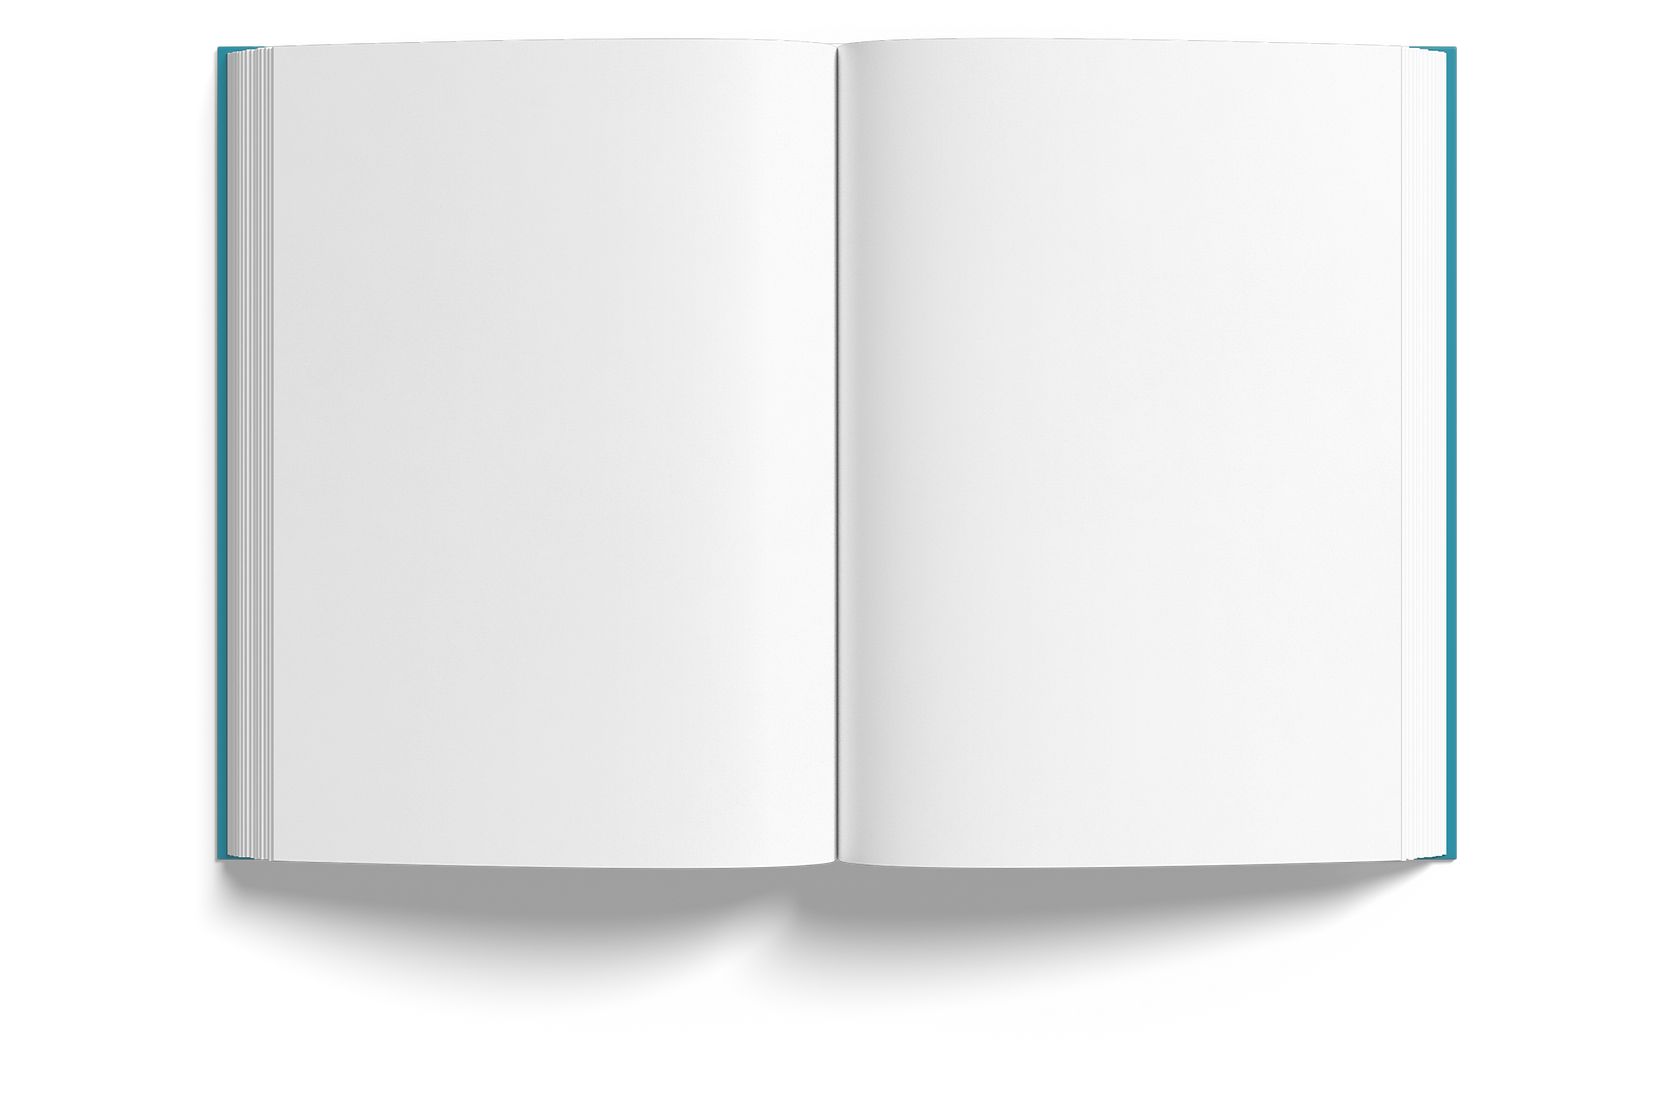 Book Open Mockup.png